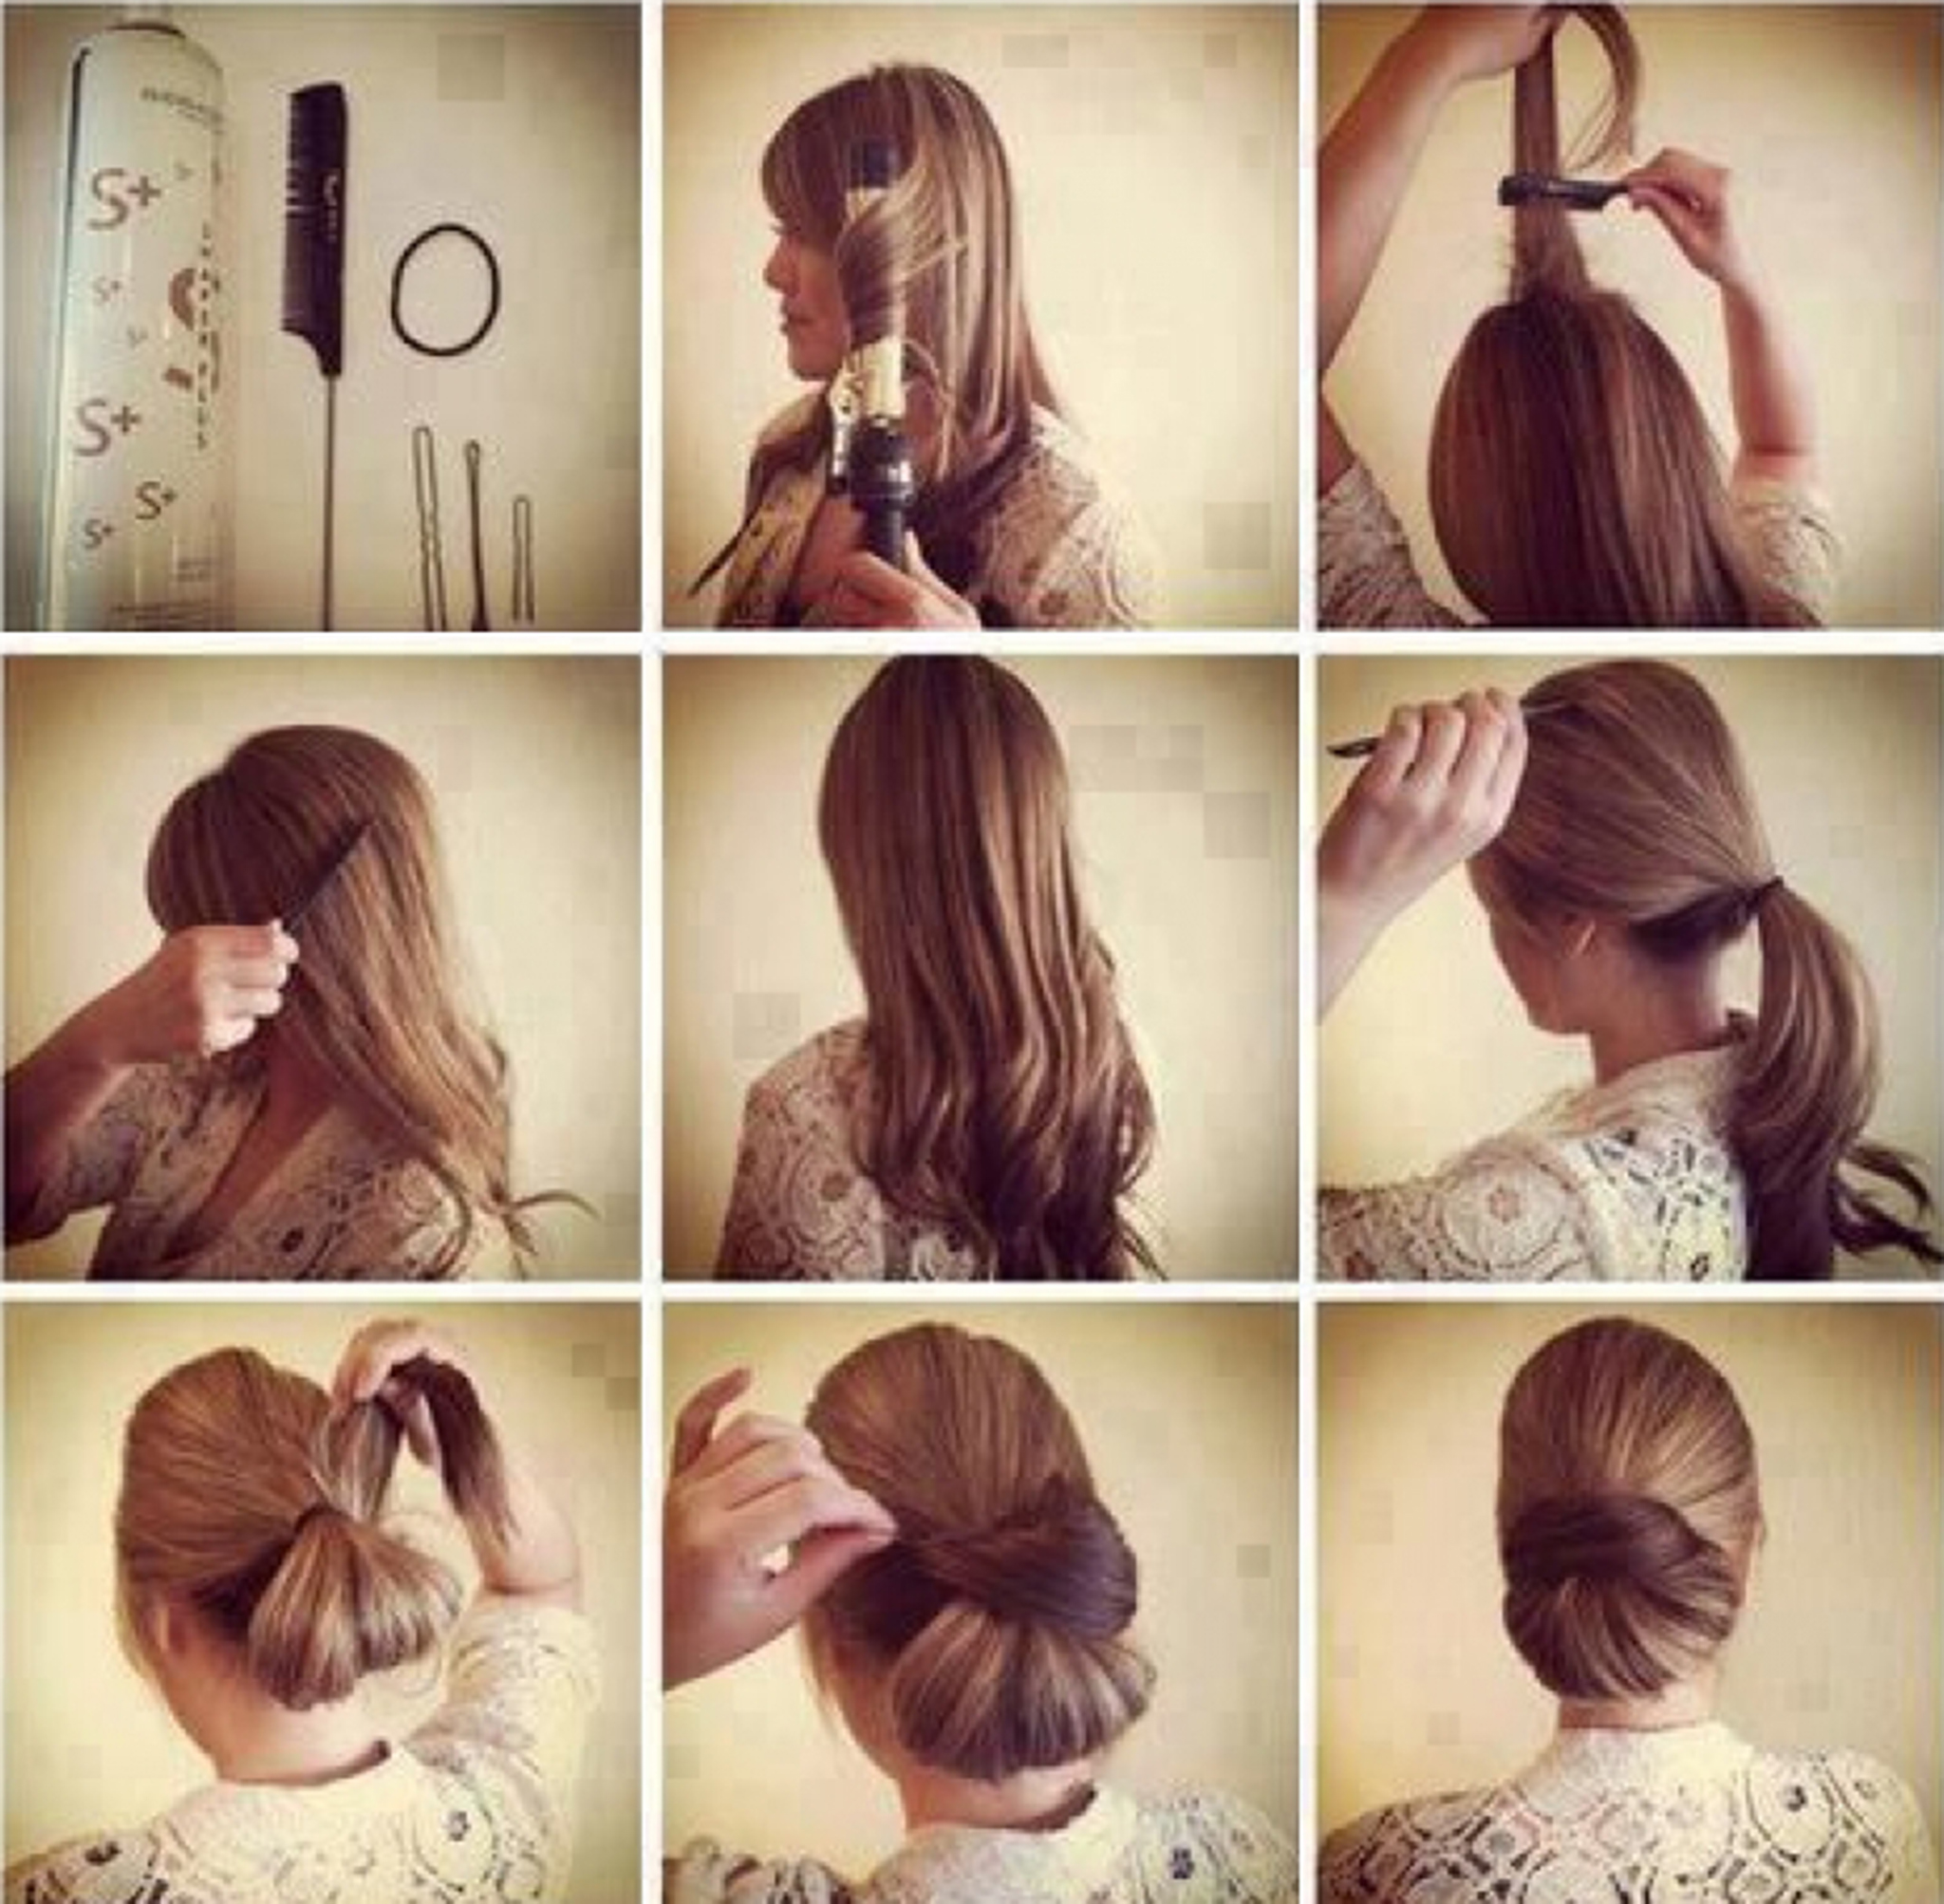 Amazing Hair Bun Tutorials To Give You Glamorous Look In Just - Hairstyle bun tutorials